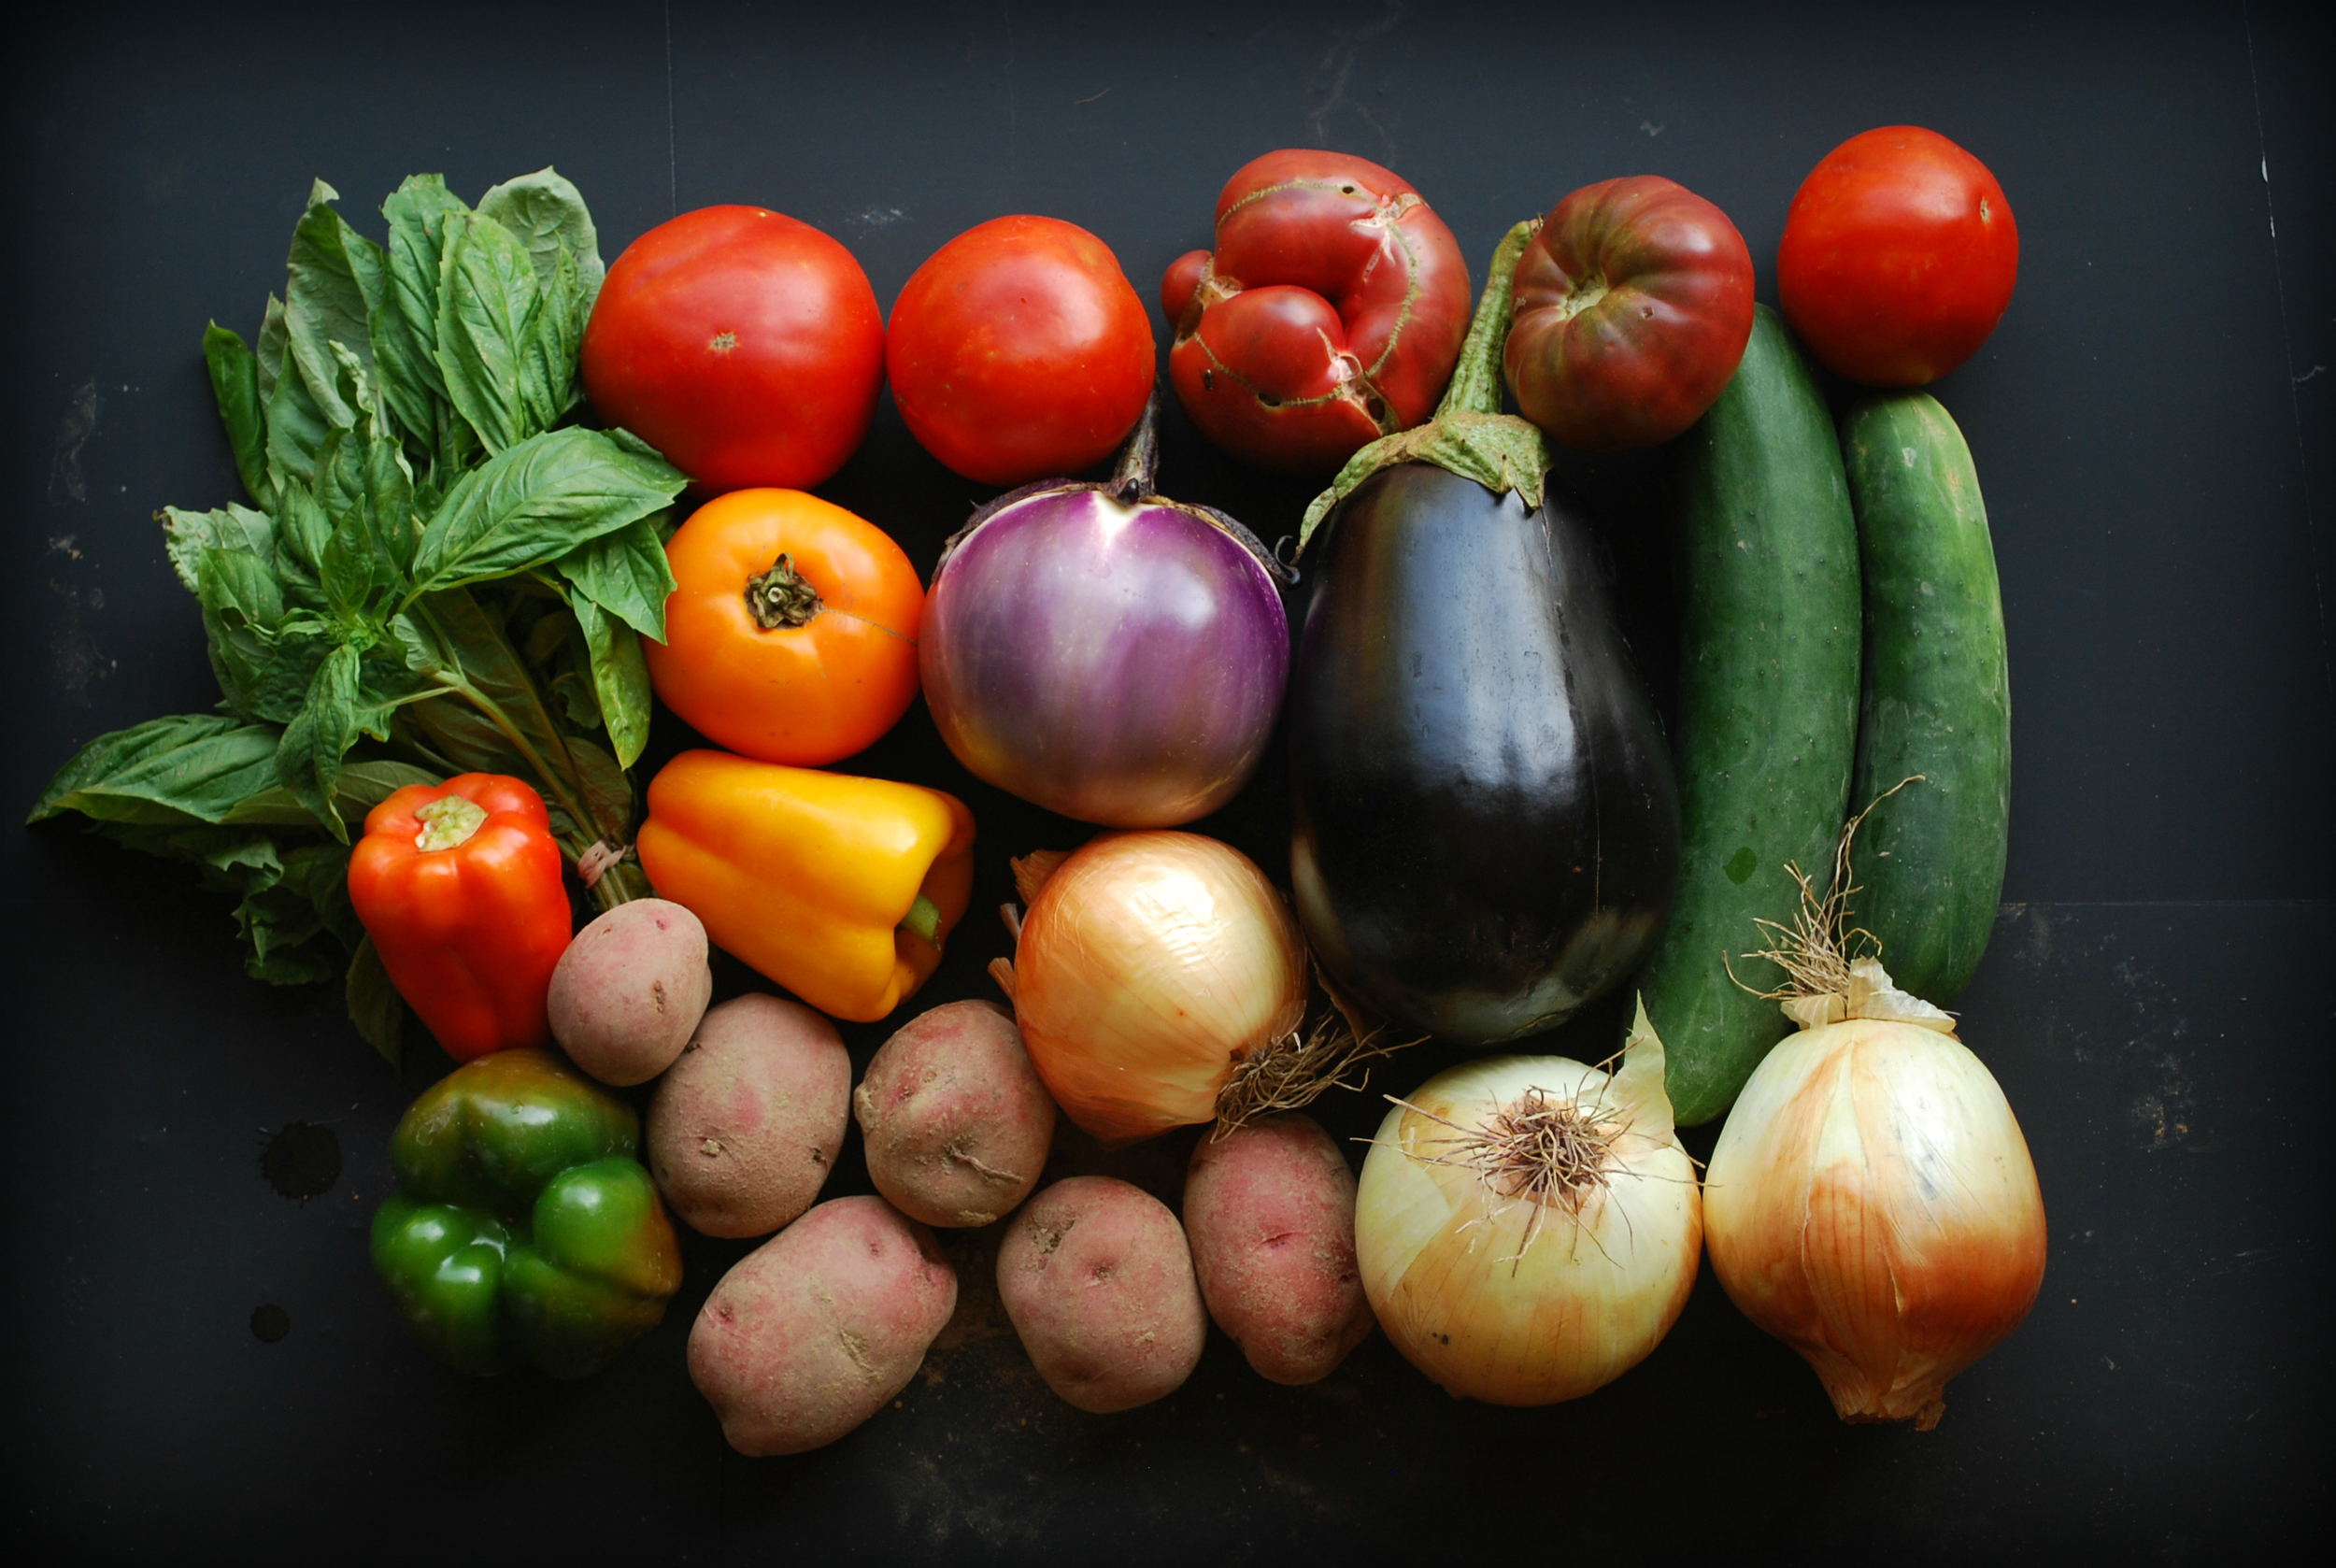 Your Week 14 Share: Basil, bell peppers, potatoes, heirloom tomatoes, slicing tomatoes, yellow onions, eggplant, cucumber.